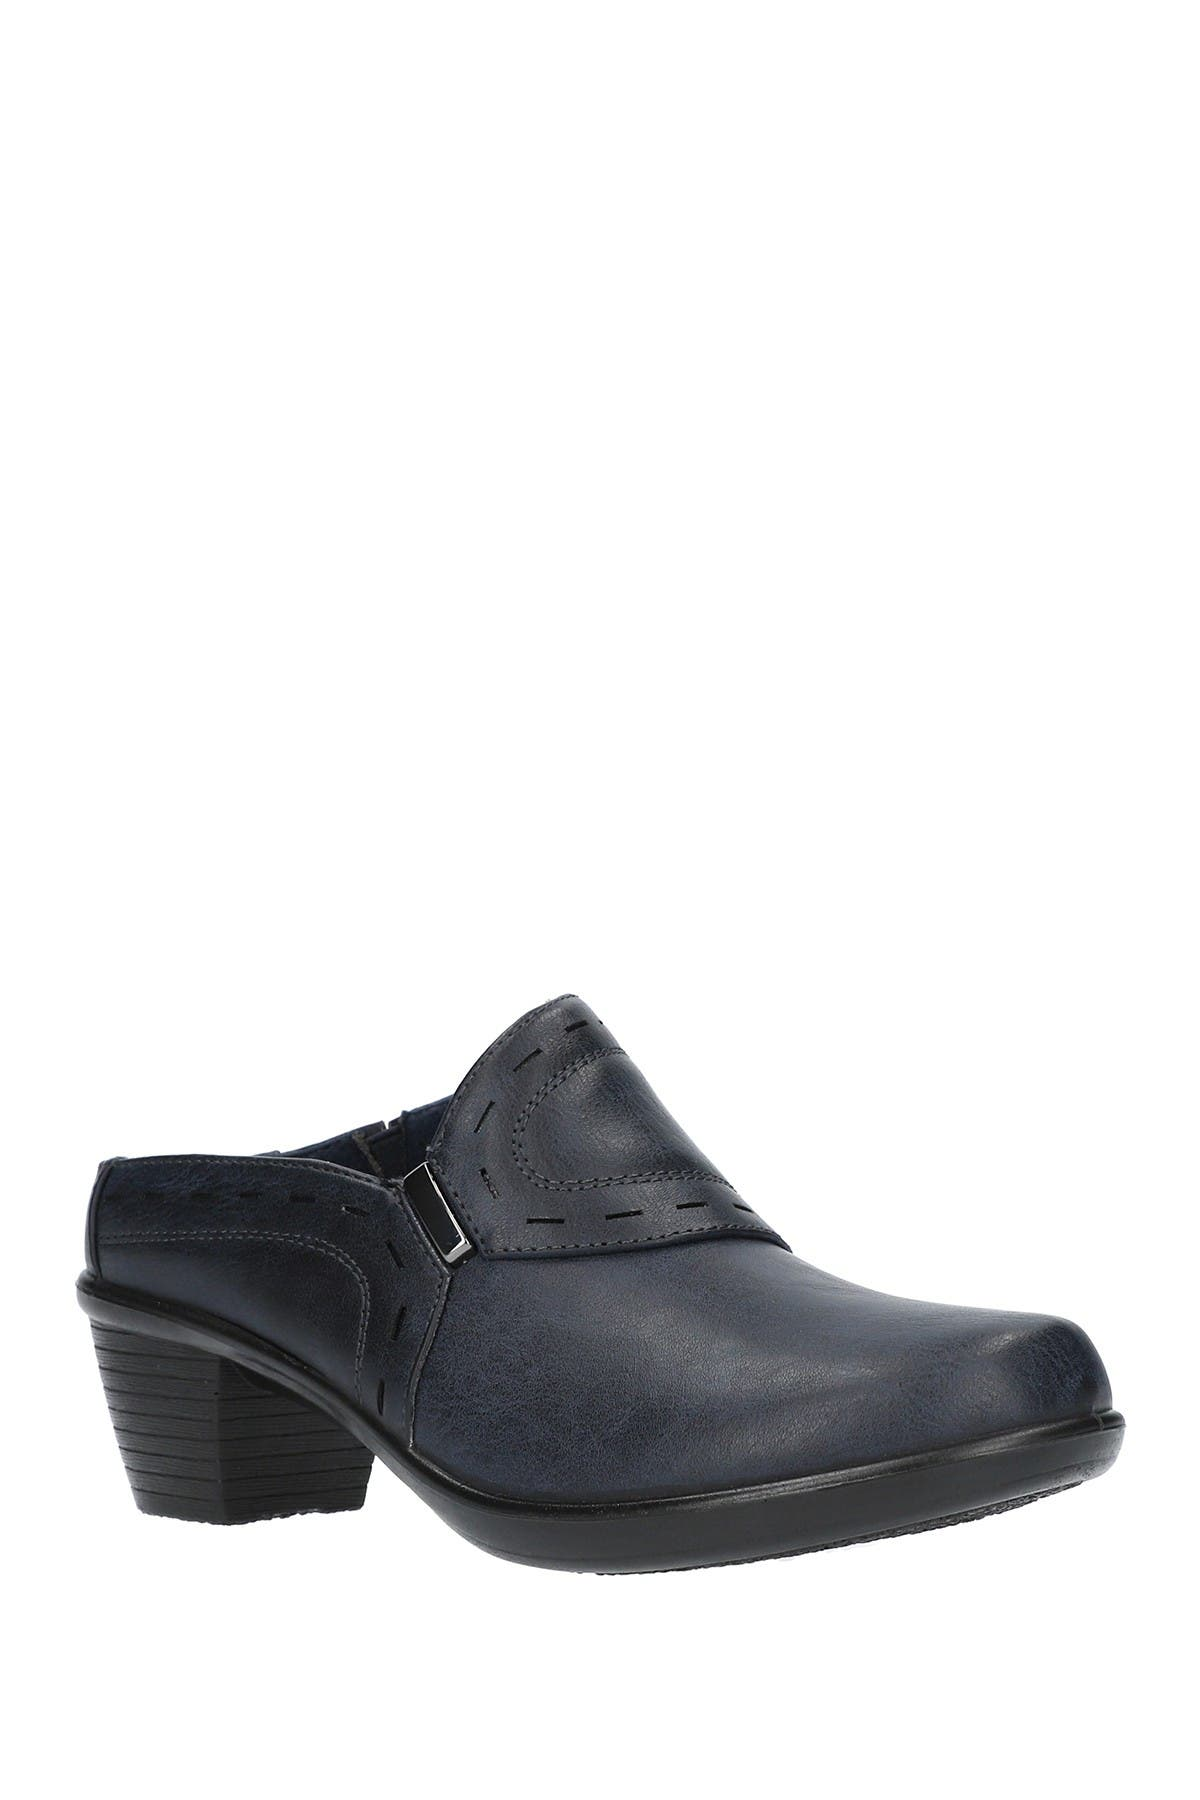 Image of EASY STREET Cynthia Comfort Mule - Multiple Widths Available